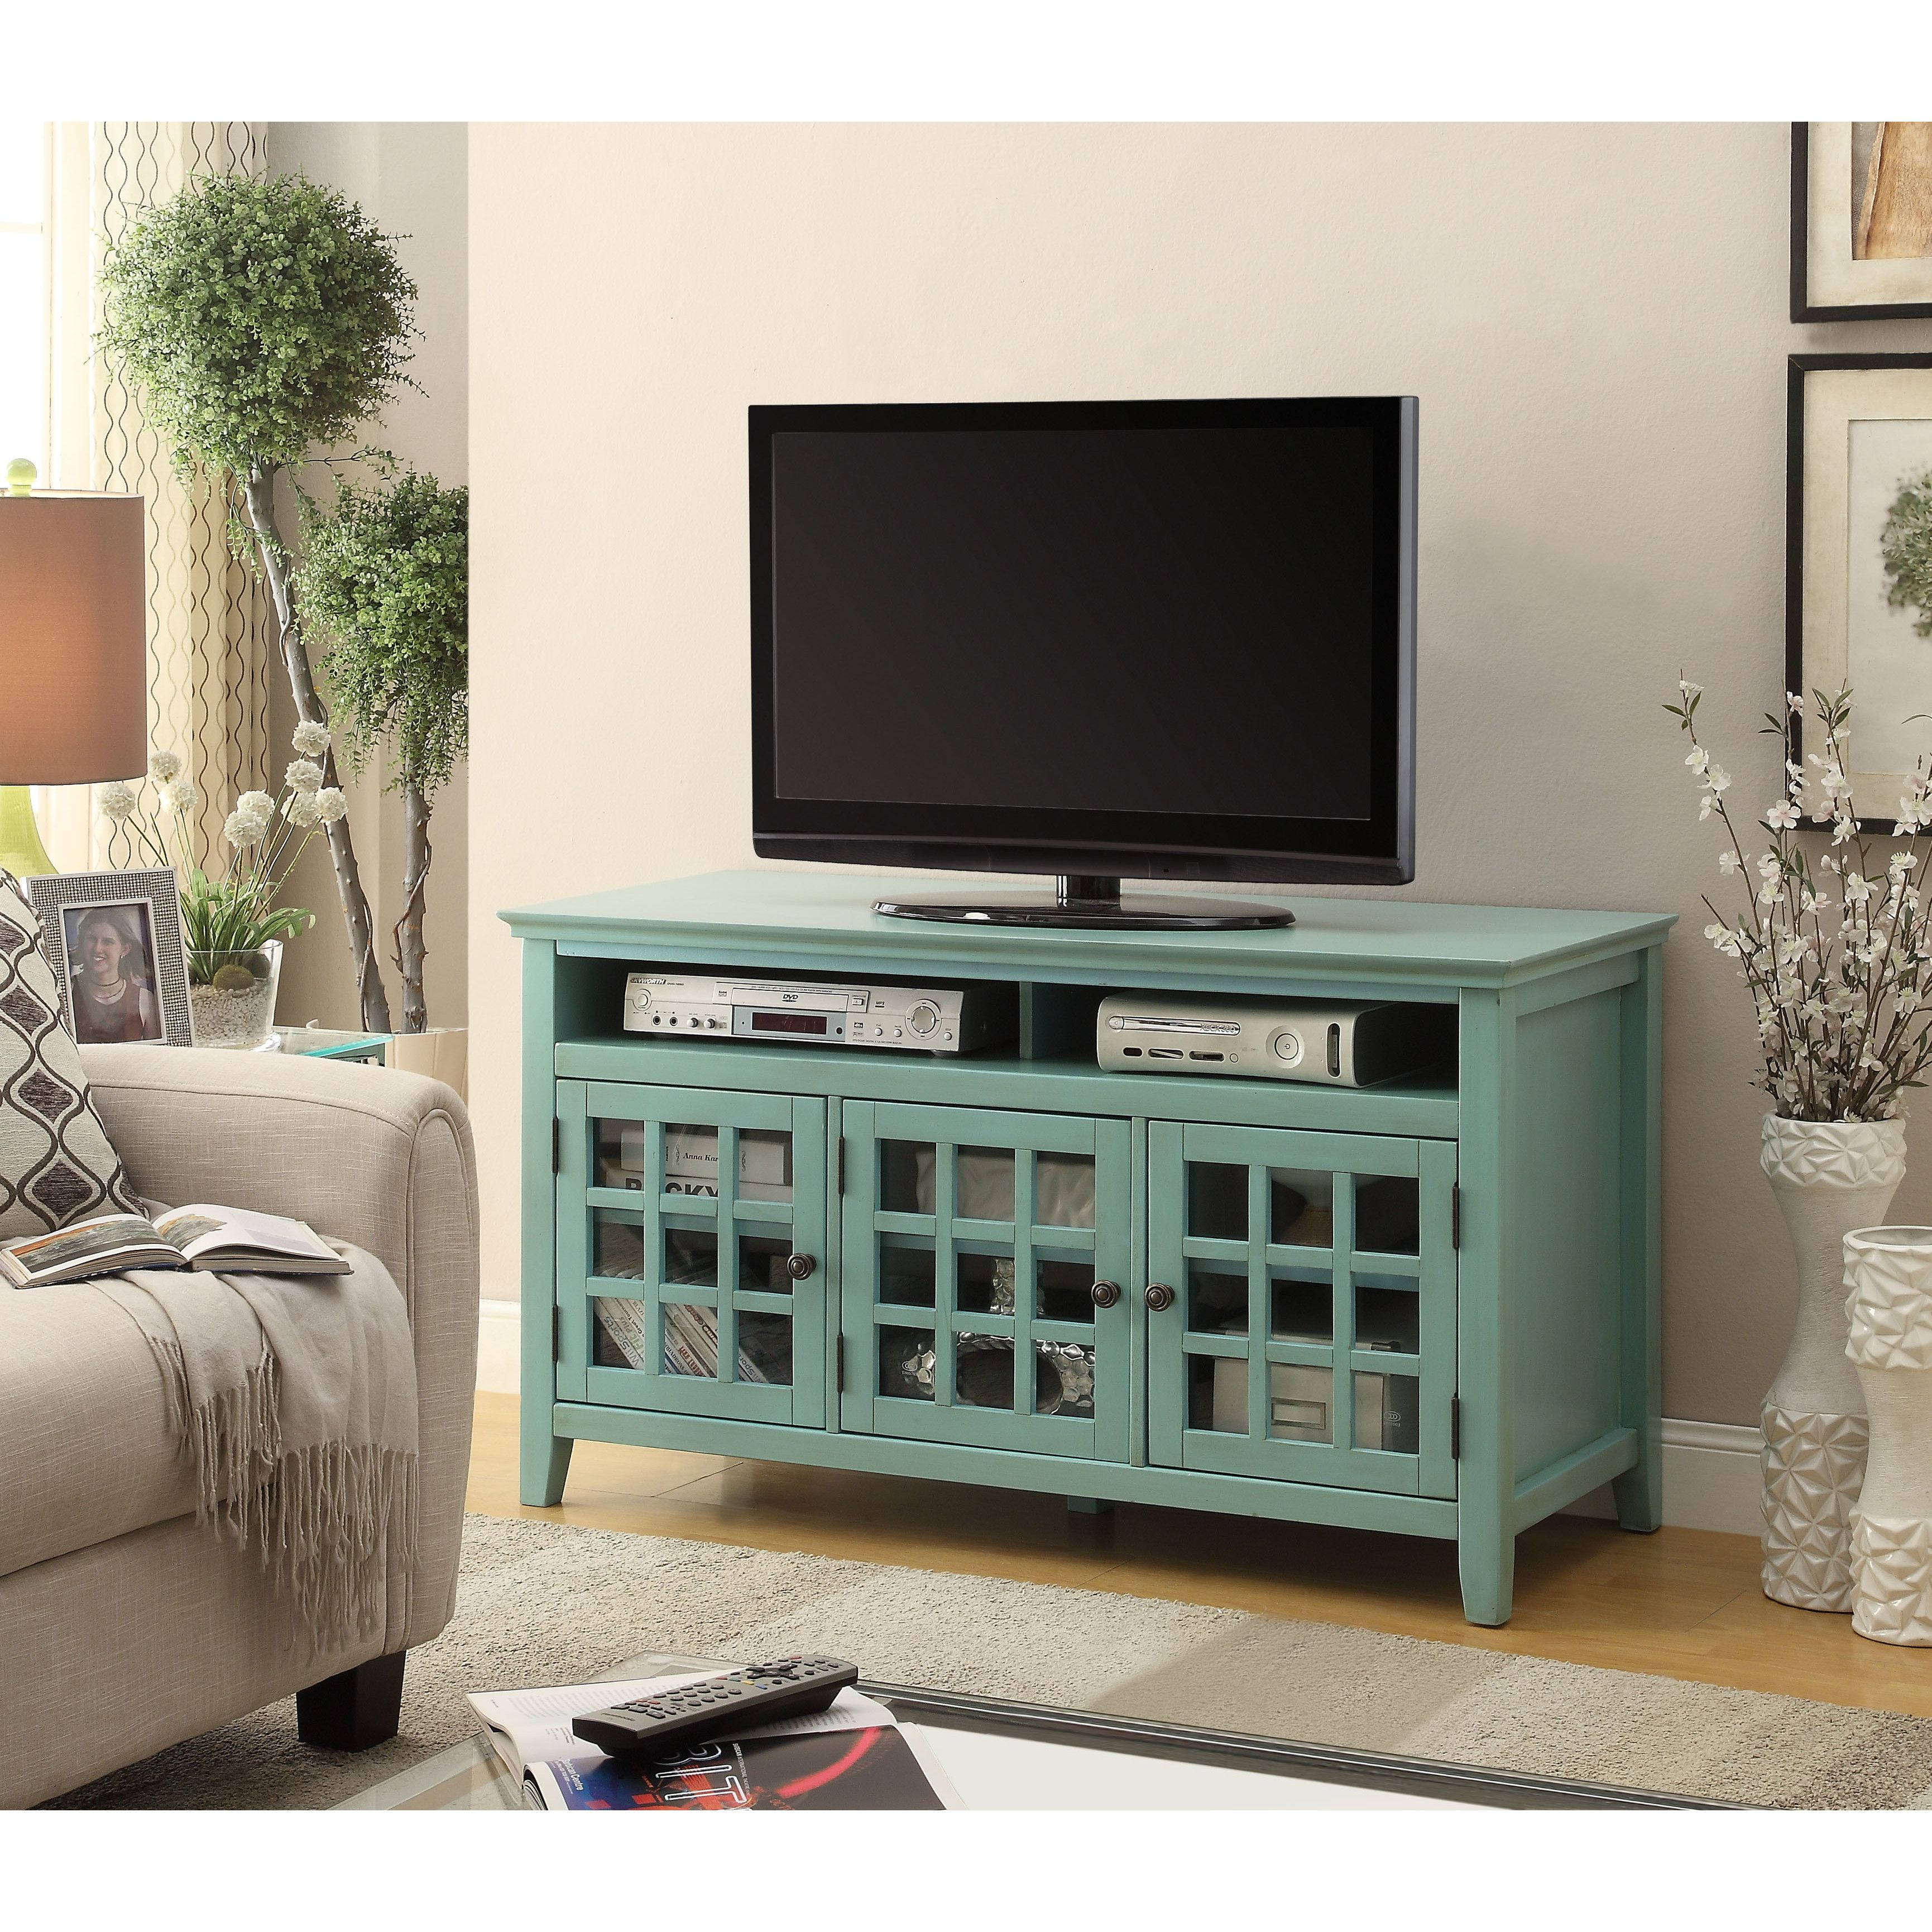 Shop Wayfair for All TV Stands to match every style and bud